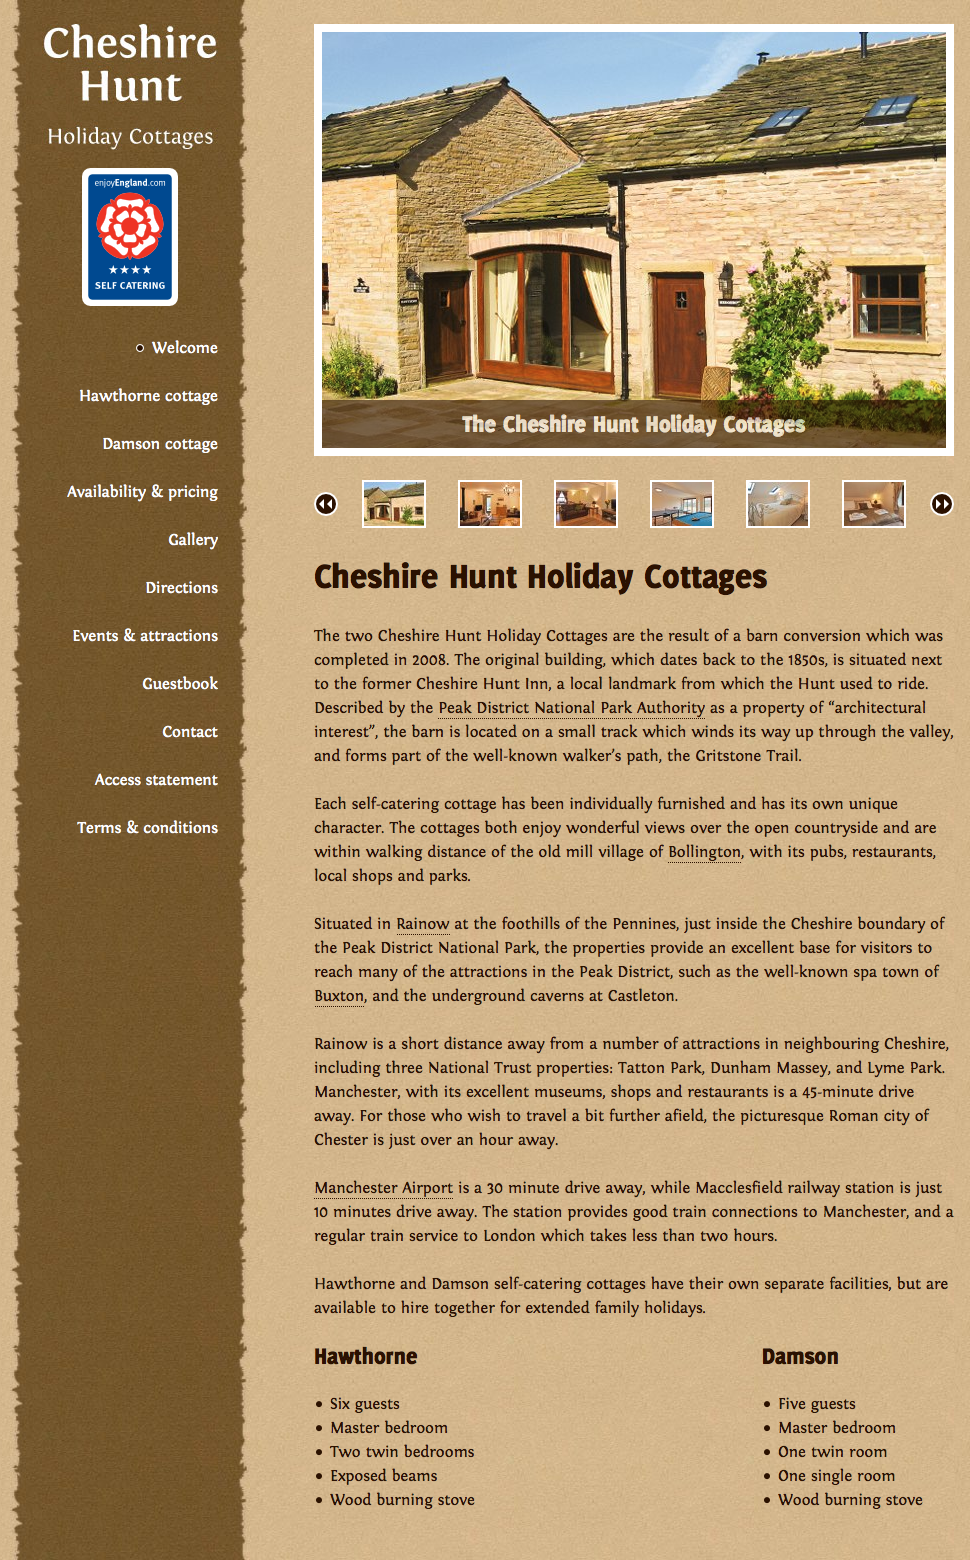 Cheshire Hunt Holiday Cottages